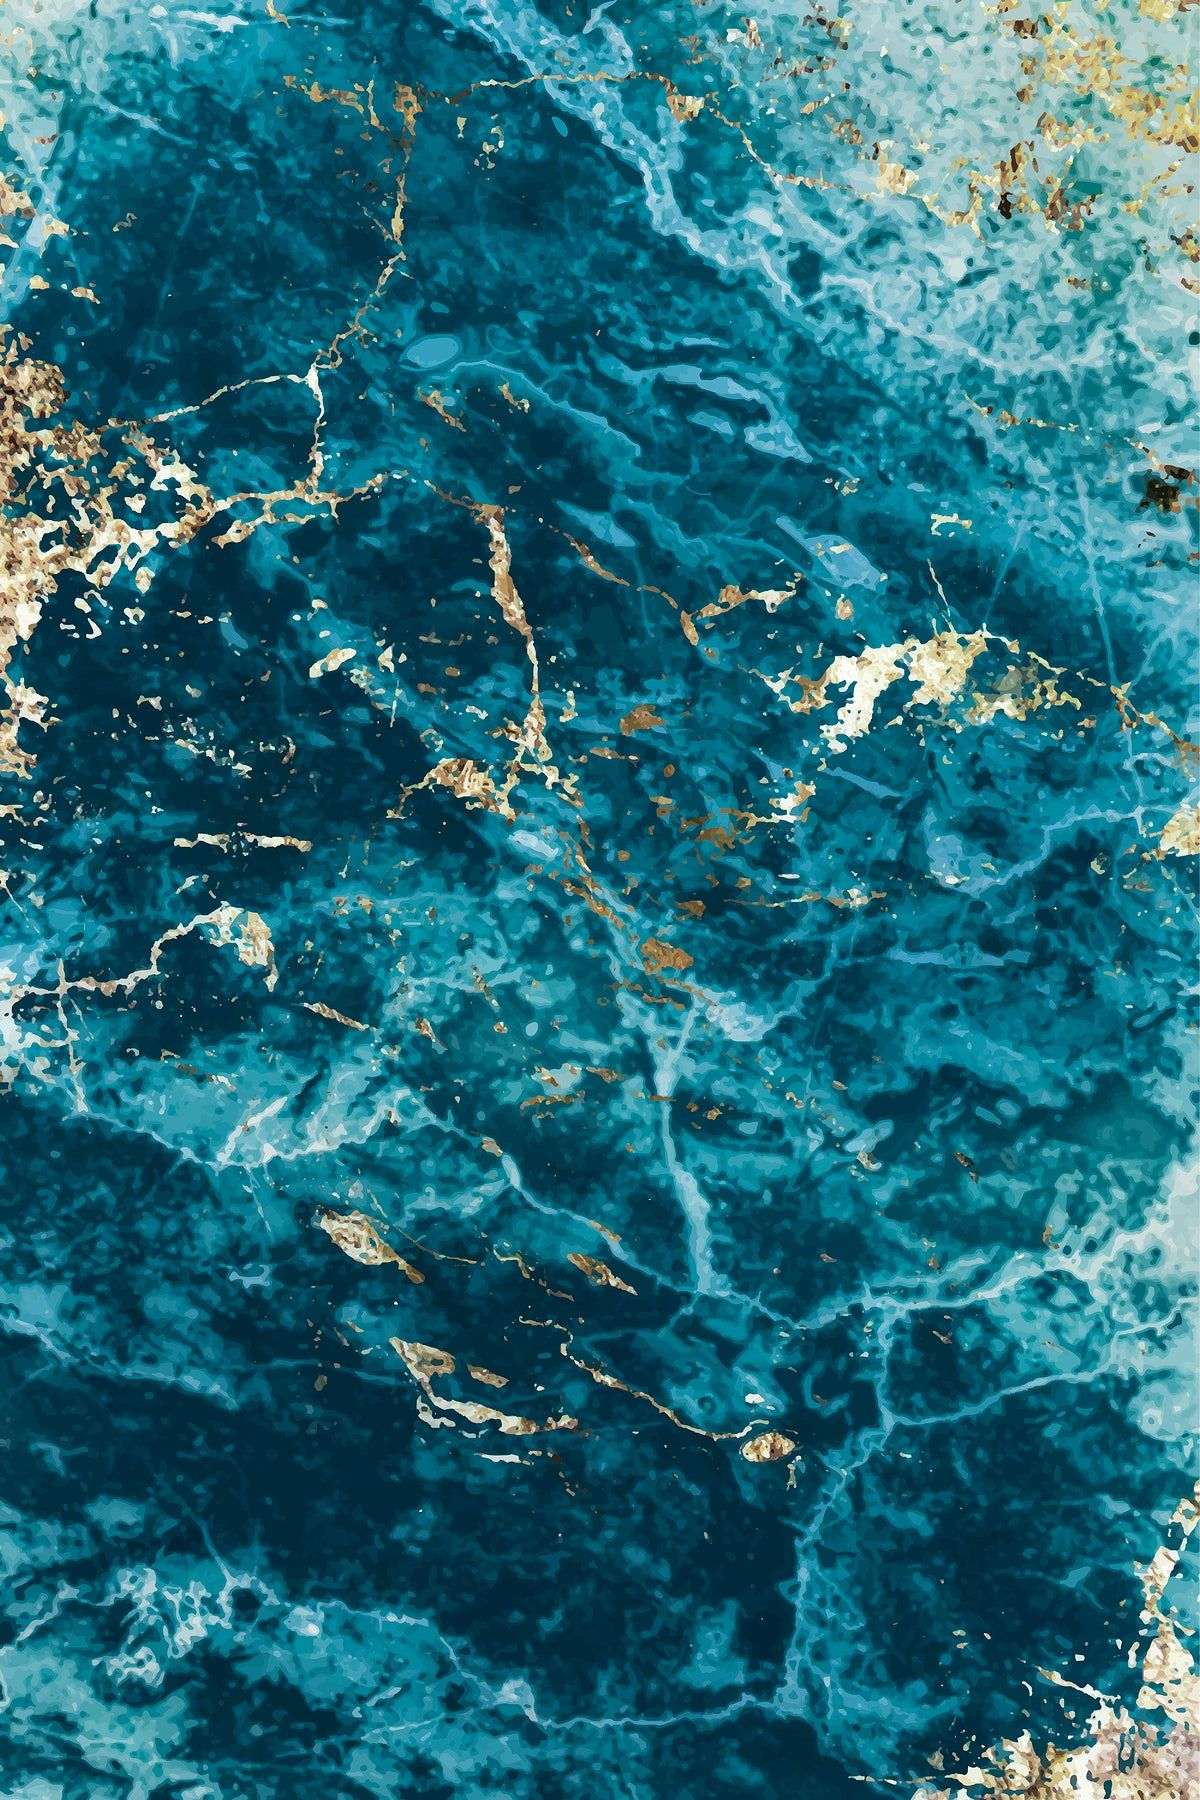 Download premium vector of Blue and gold marble textured background vector